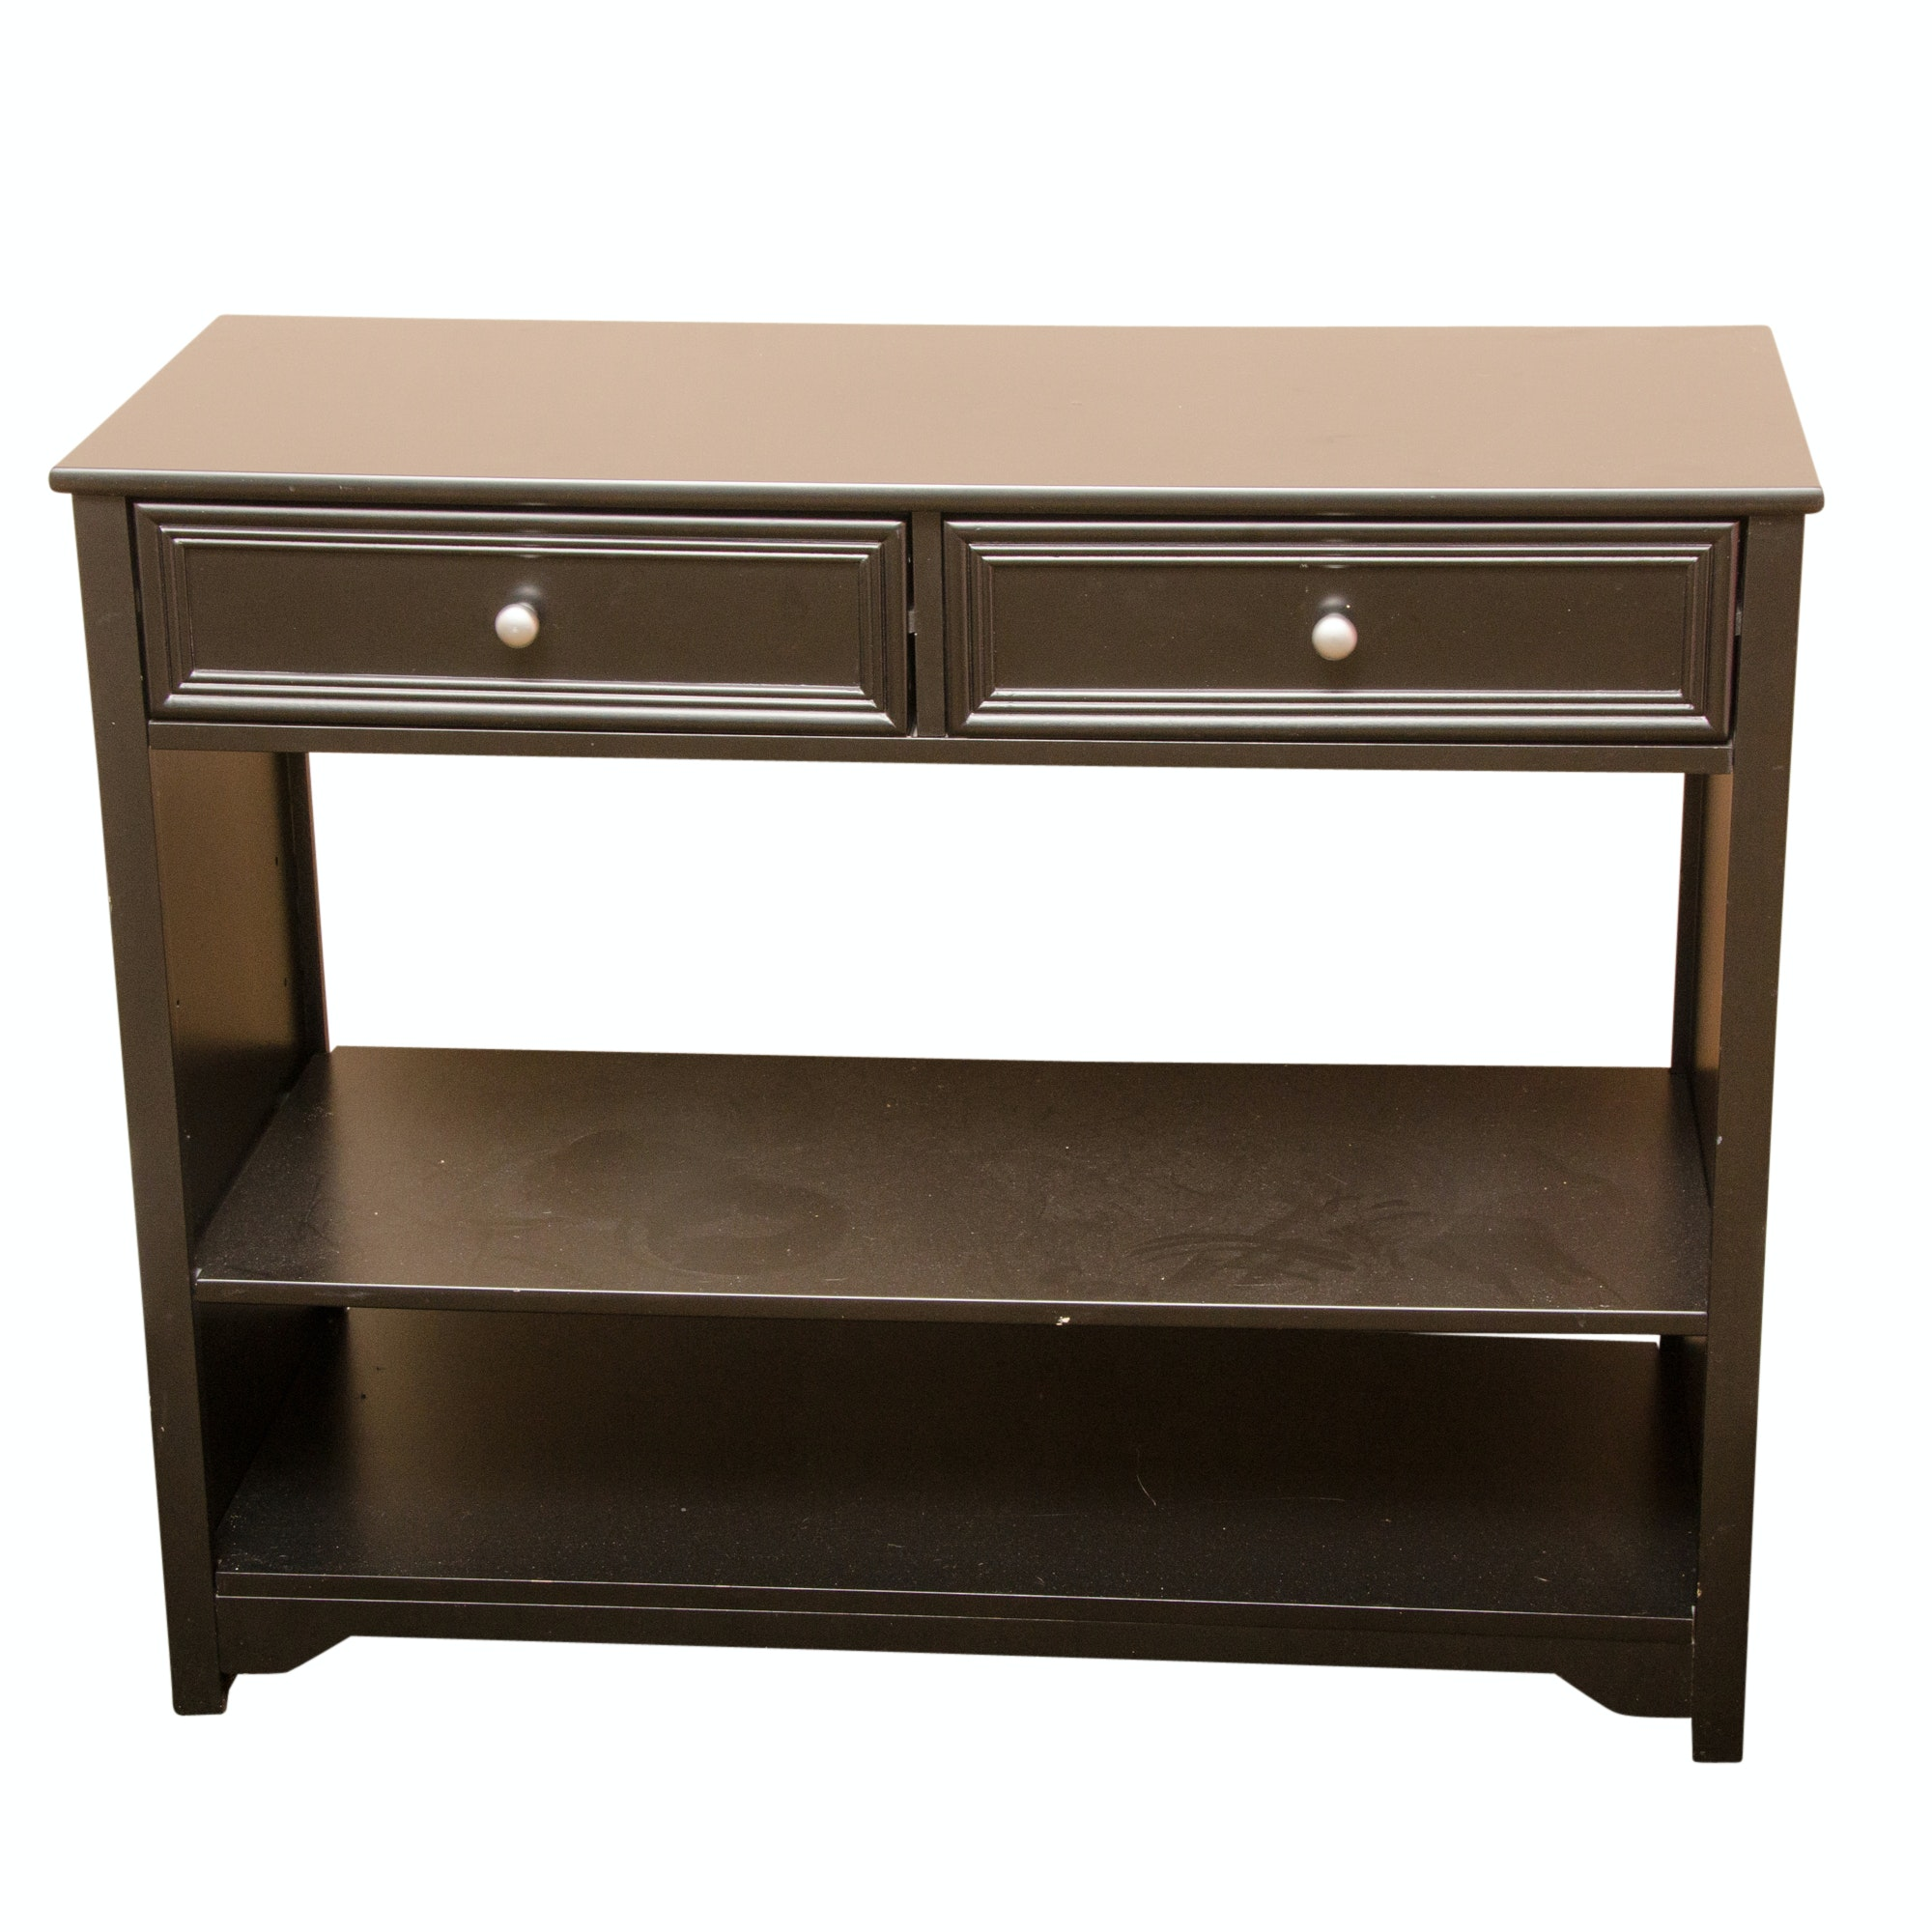 Contemporary Dark-Finished Console Table